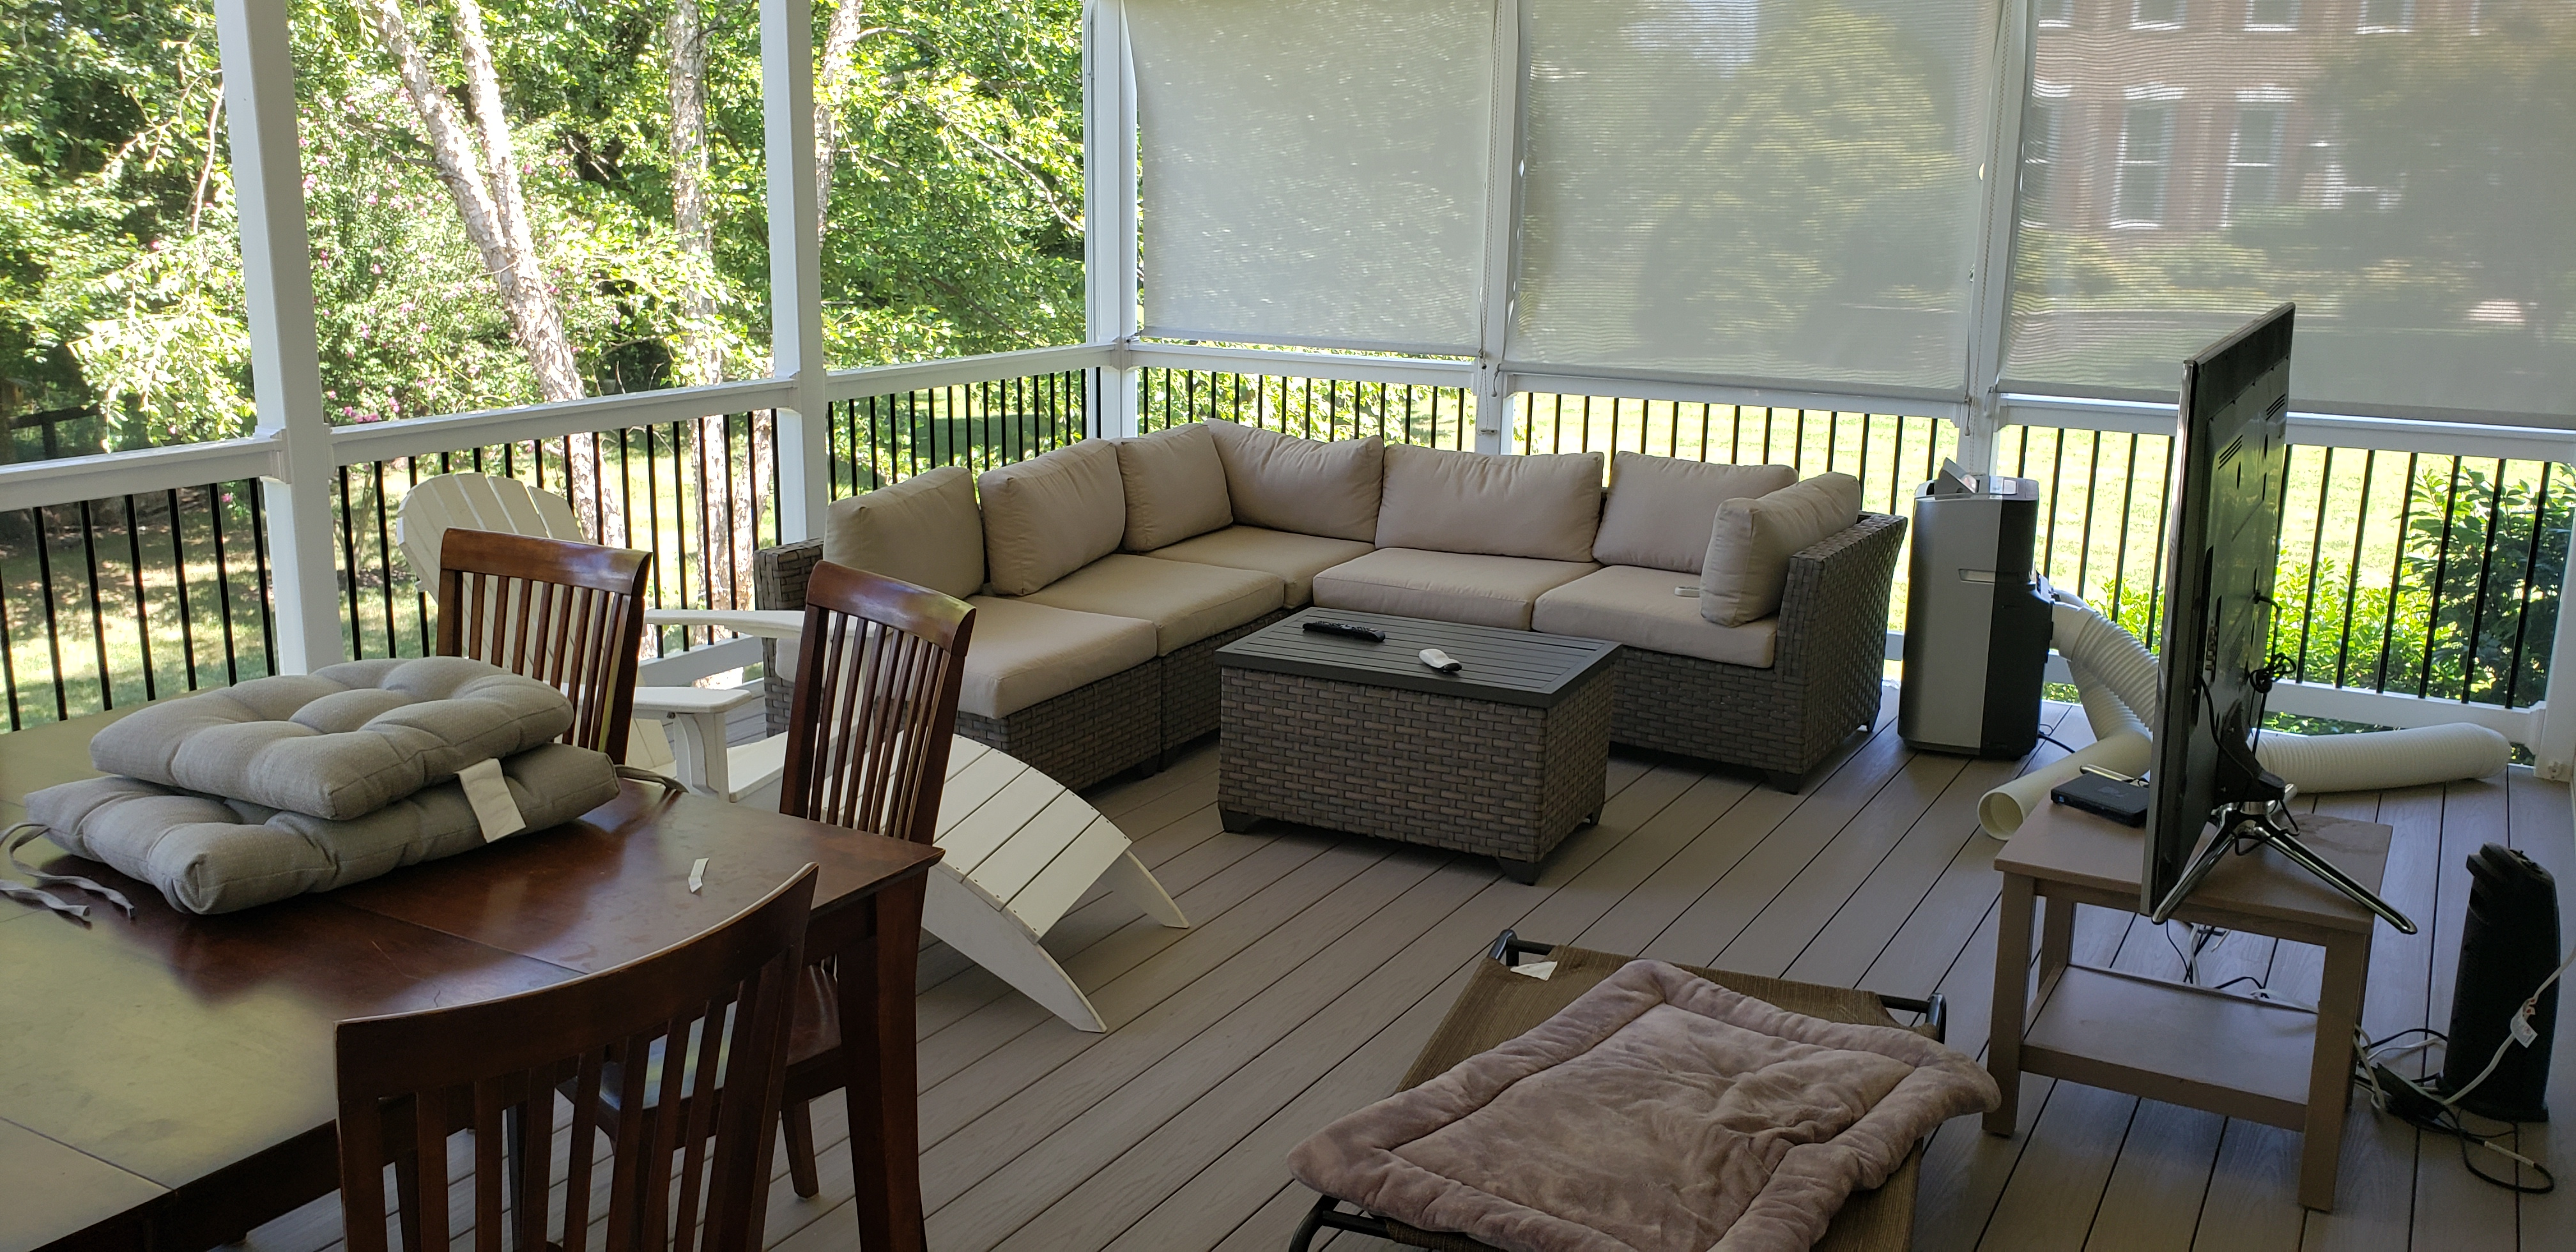 Azek Decks and Screen Porch